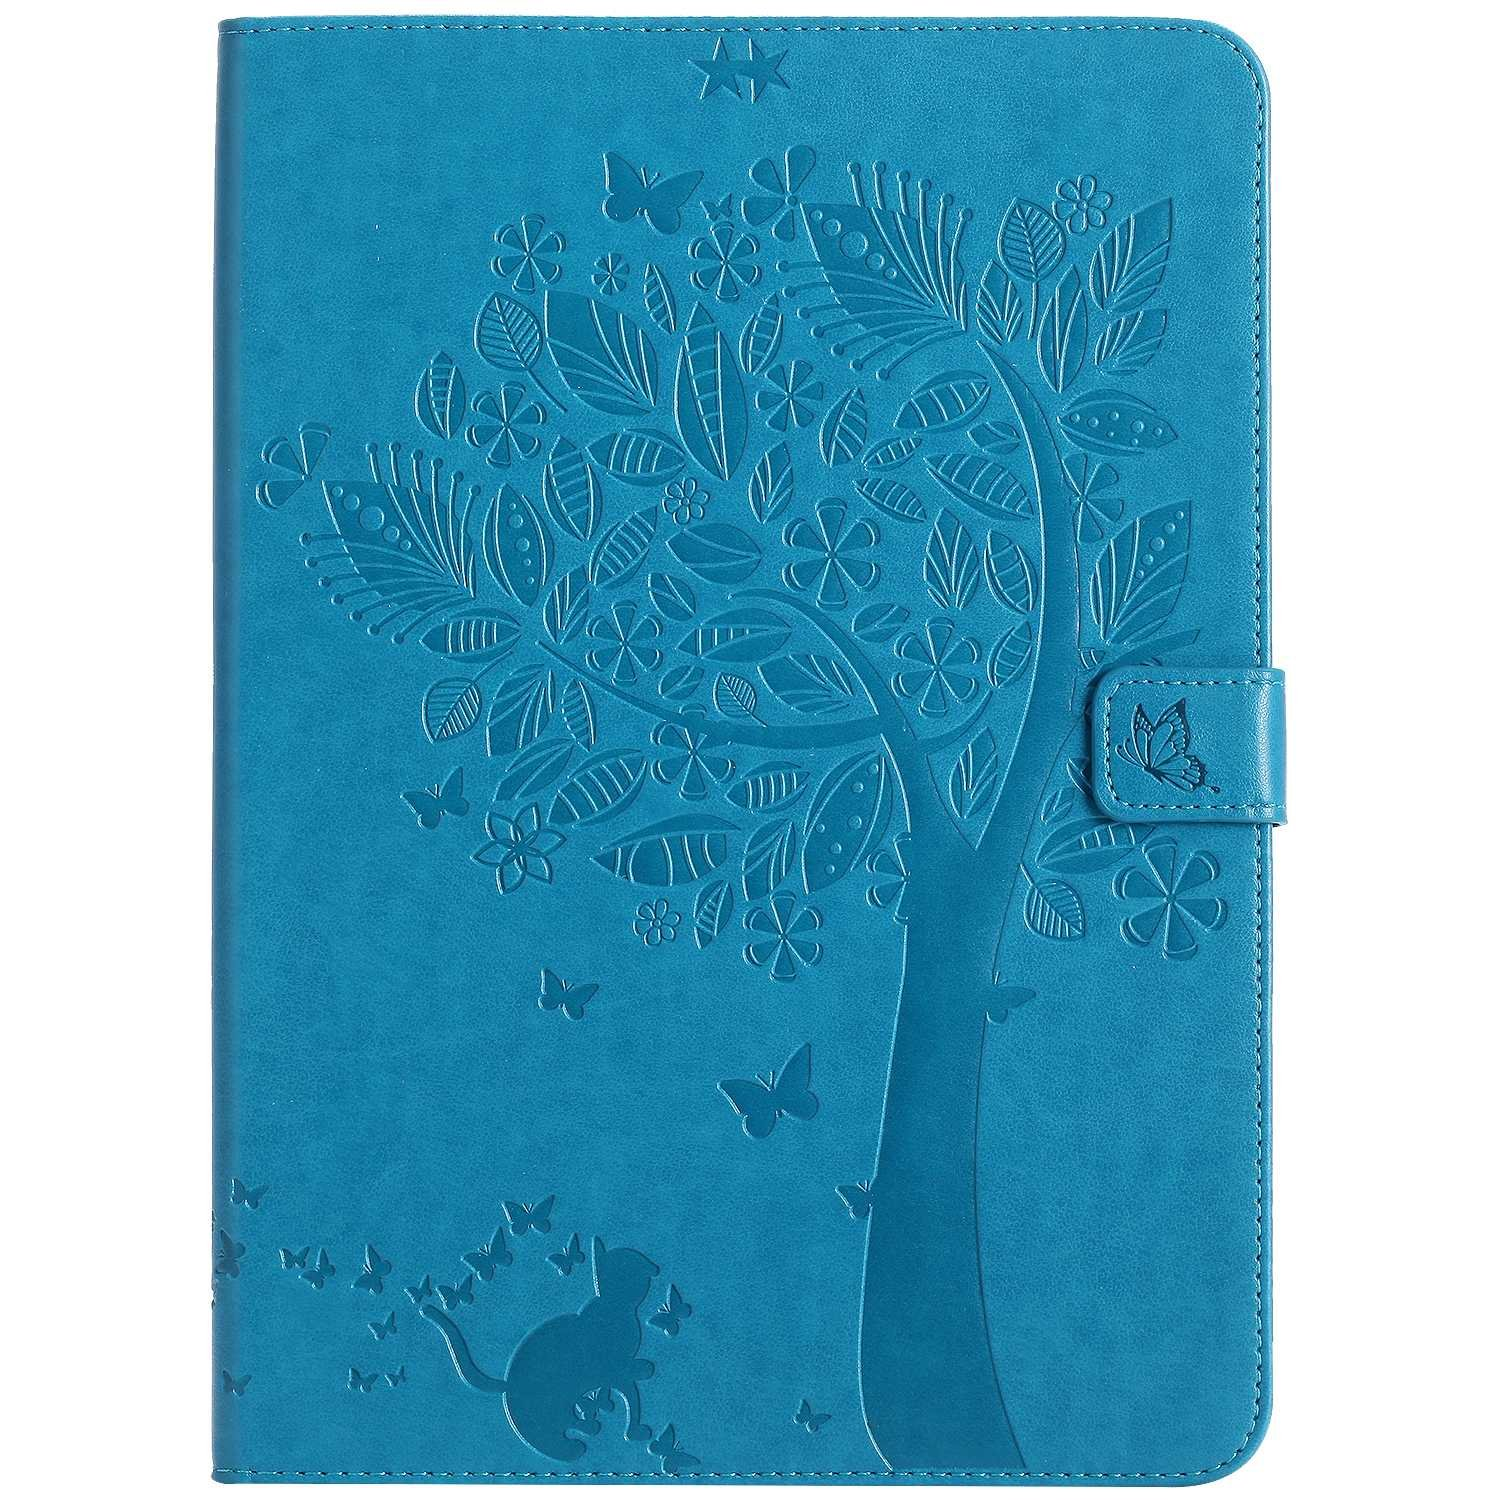 Bear Village iPad Air 2 (9.7 Inch) Case, Leather Magnetic Case, Fullbody Protective Cover with Stand Function for Apple iPad Air 2 (9.7 Inch), Blue by Bear Village